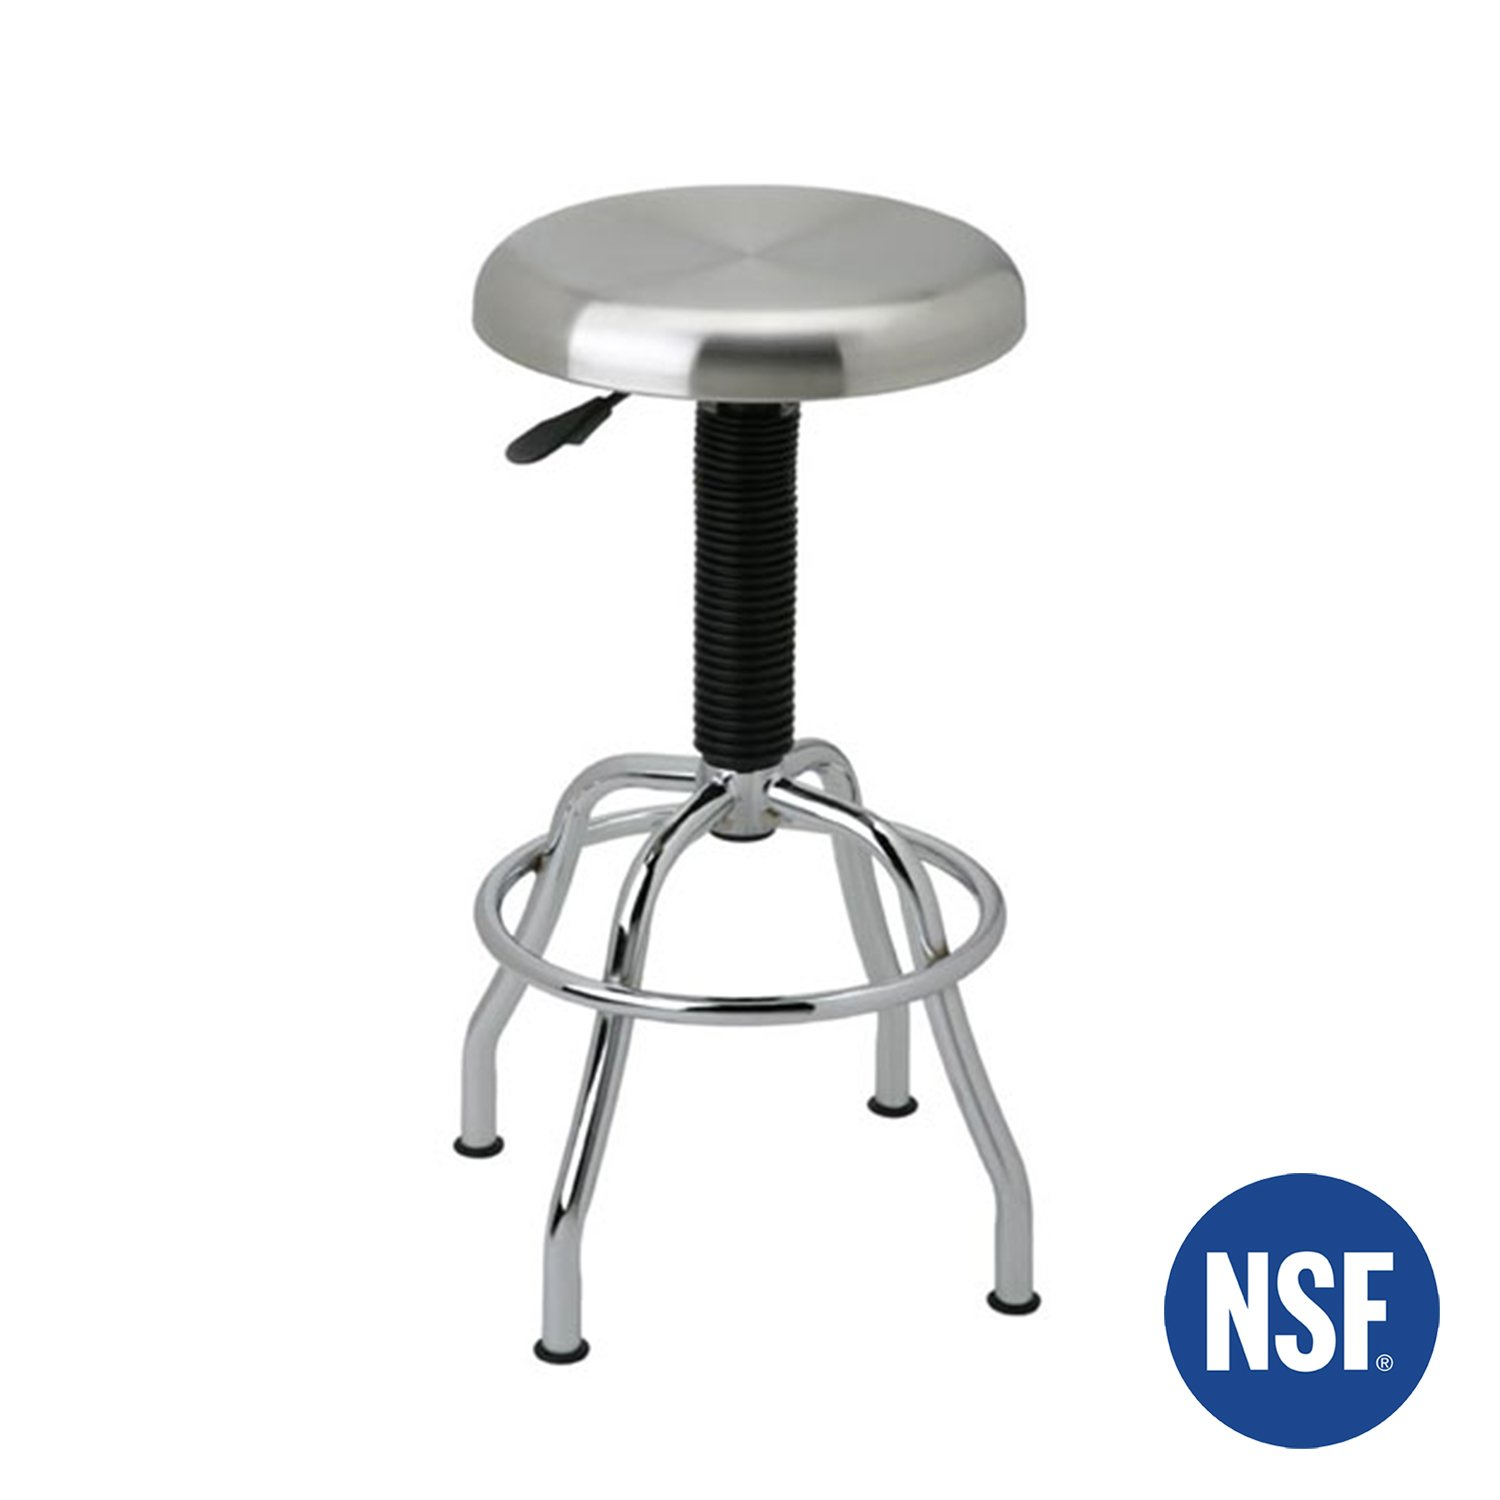 Classic Seville Classics Stainless Steel Pneumatic Work Stool